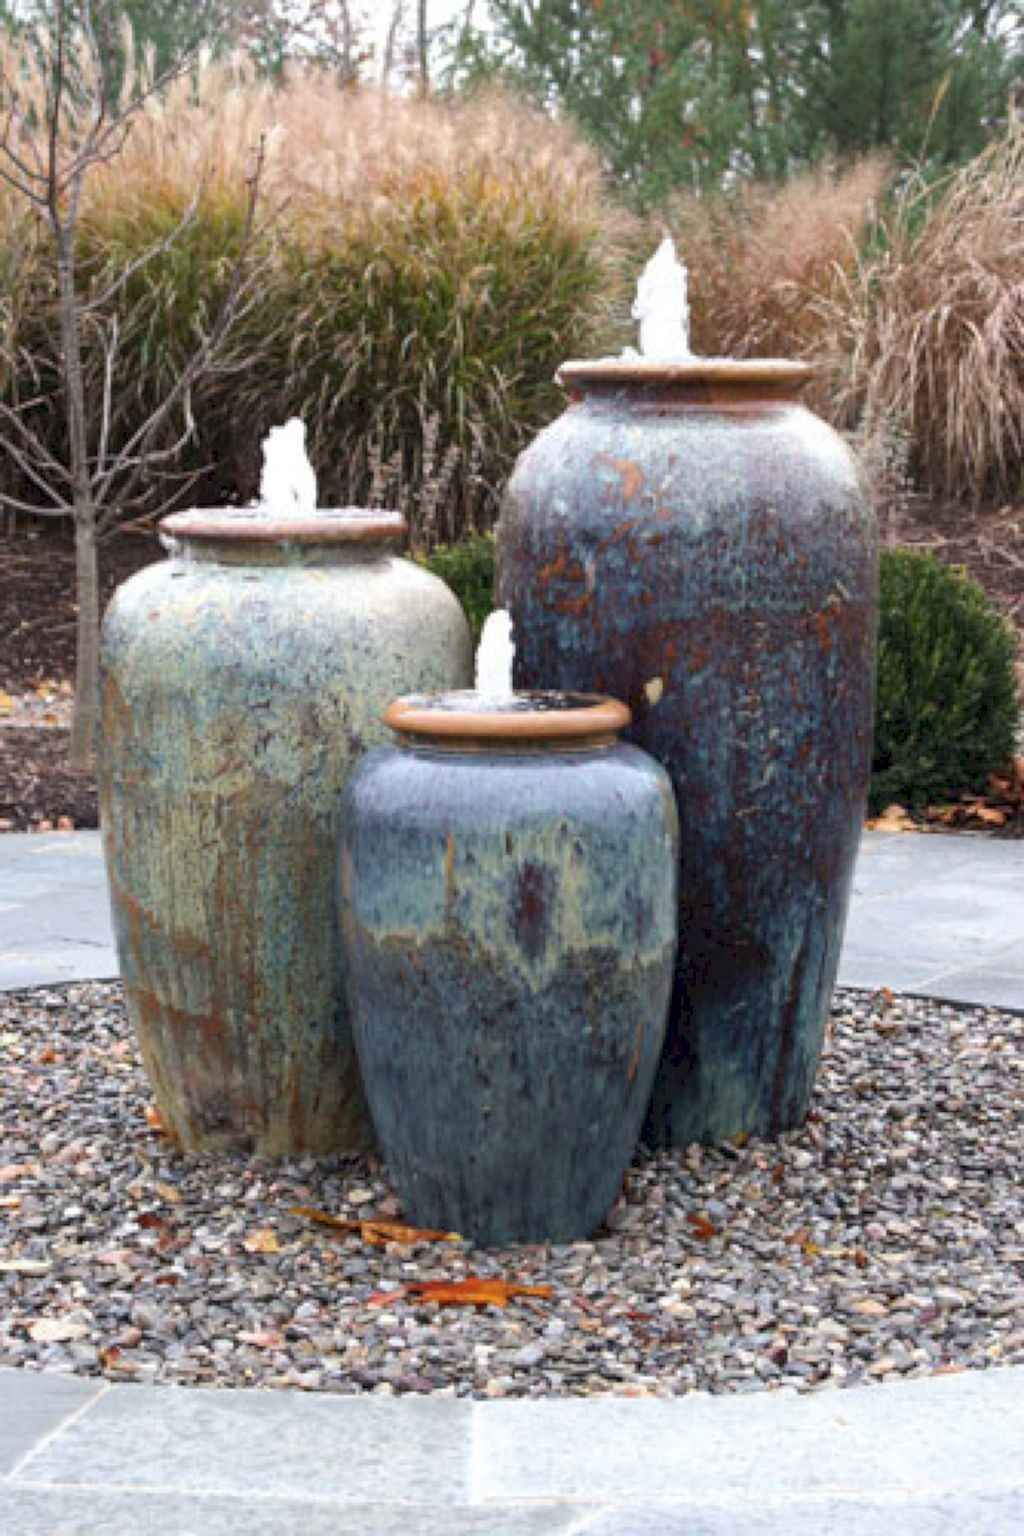 29 Awesome Water Features Ideas Low Budget #waterfeatures